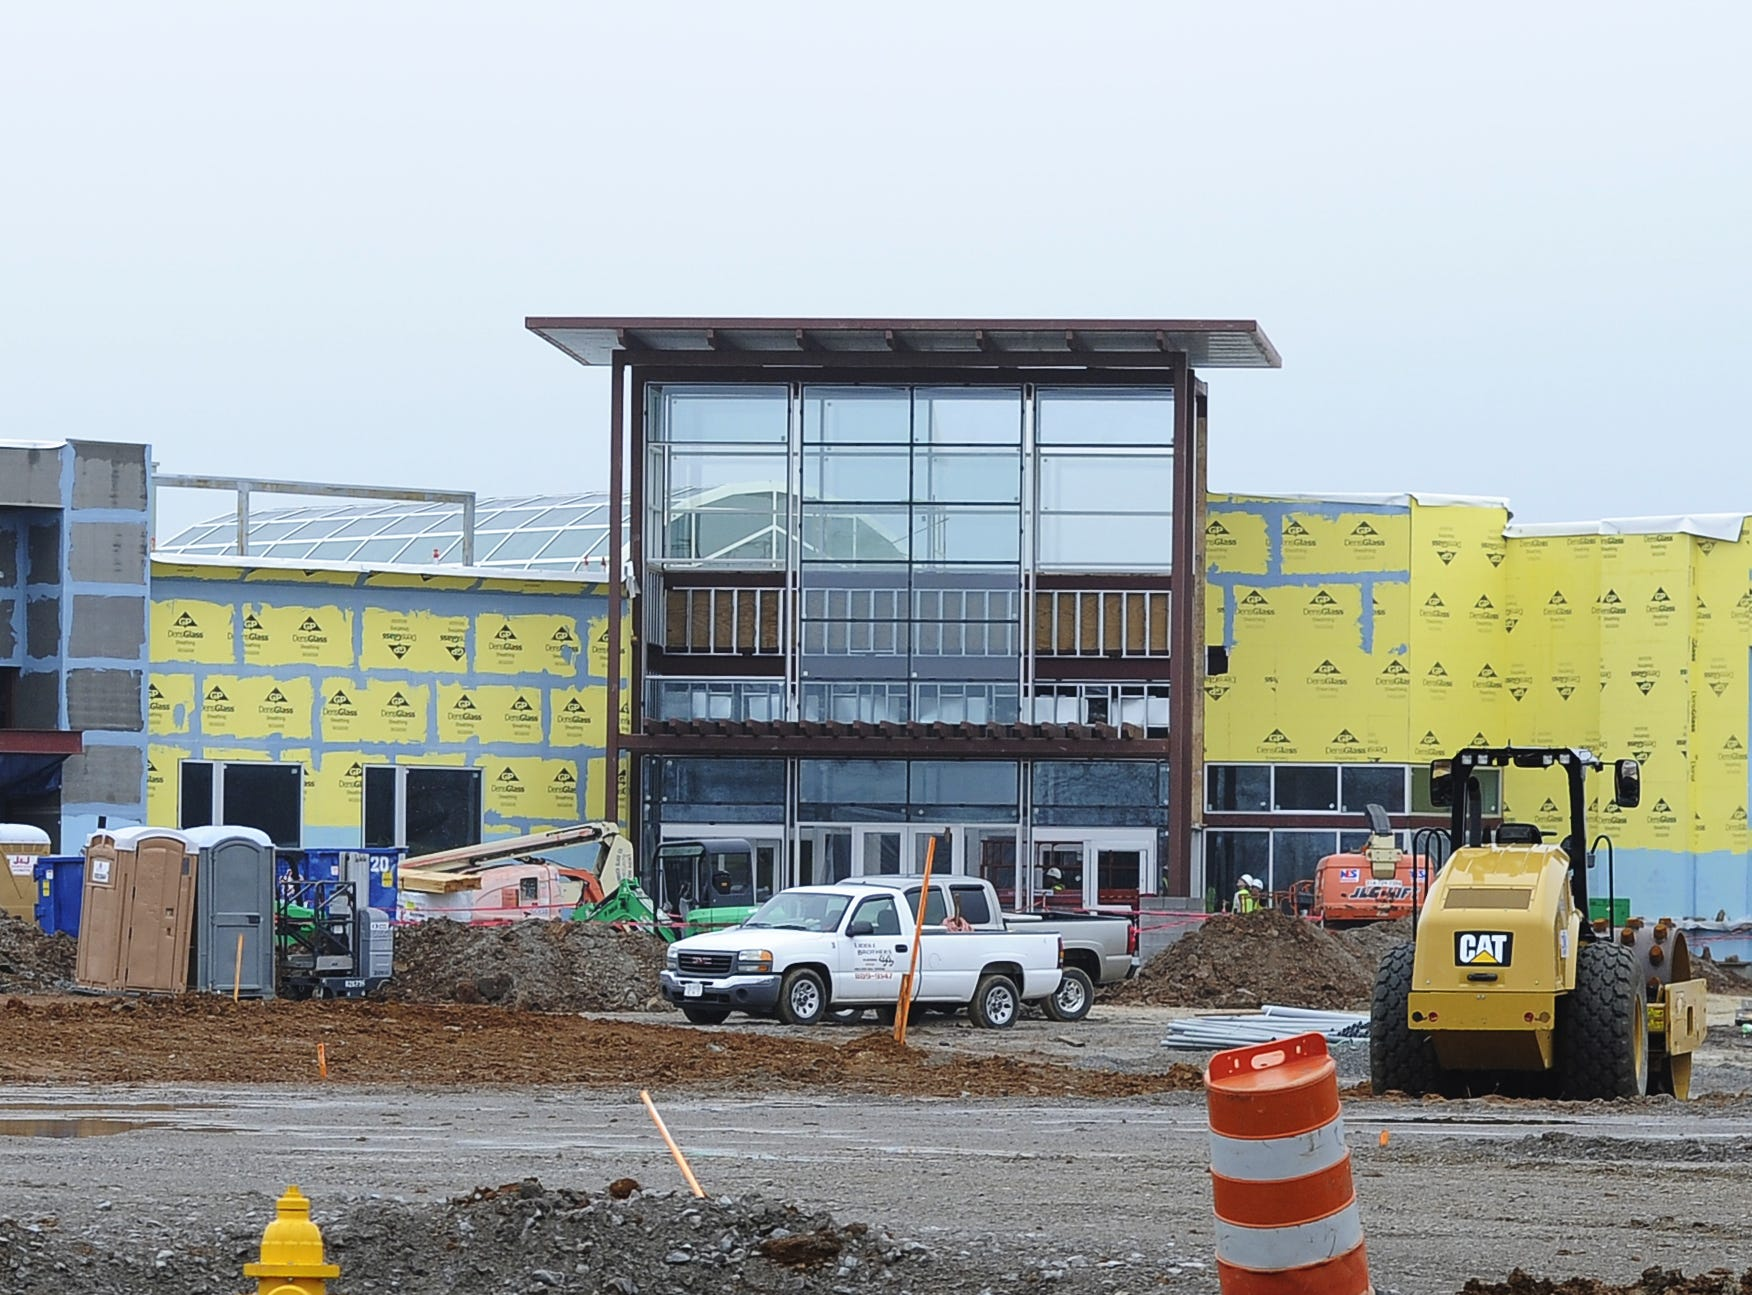 Shelley Mays / The Tennessean Construction continues of new stores at CoolSprings Galleria, where a Sears store was once located.